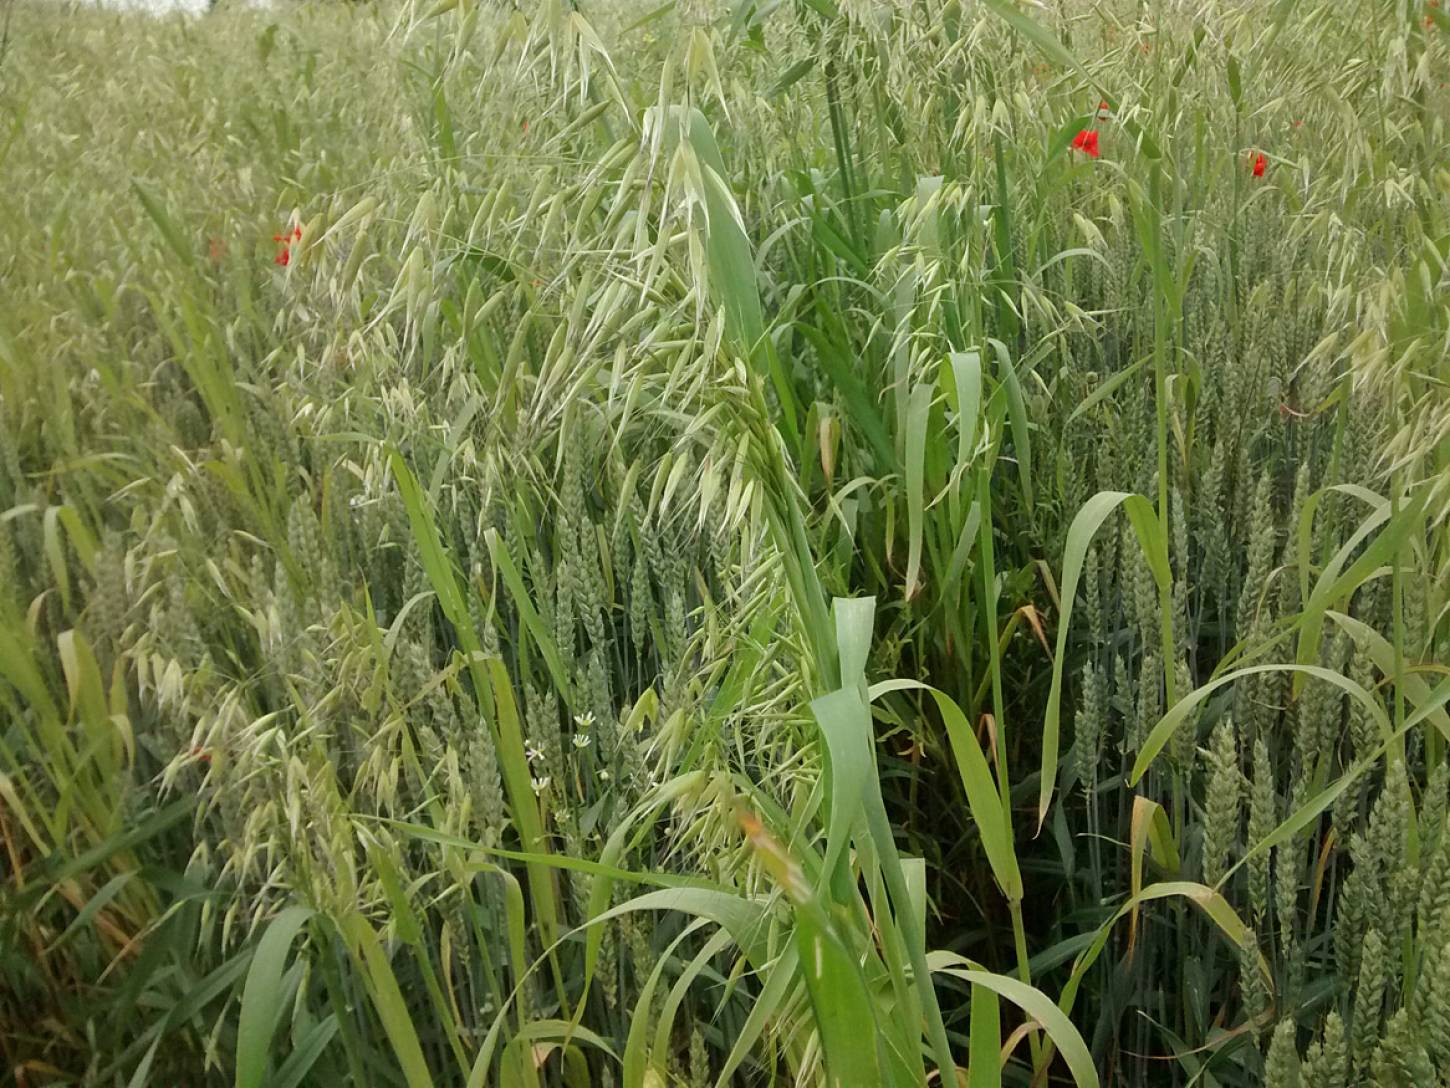 Perry Court biodynamic Farm review - modern Nelson wheat overgrown - 3:51pm&nbsp;23<sup>rd</sup>&nbsp;Jun.&nbsp;'15  <a href='http://maps.google.com/?t=h&q=51.241413,1.021581&z=15' target=_blank><img src='http://www.brockwell-bake.org.uk/img/marker.png' style='border:none;vertical-align:top' height=16px></a>